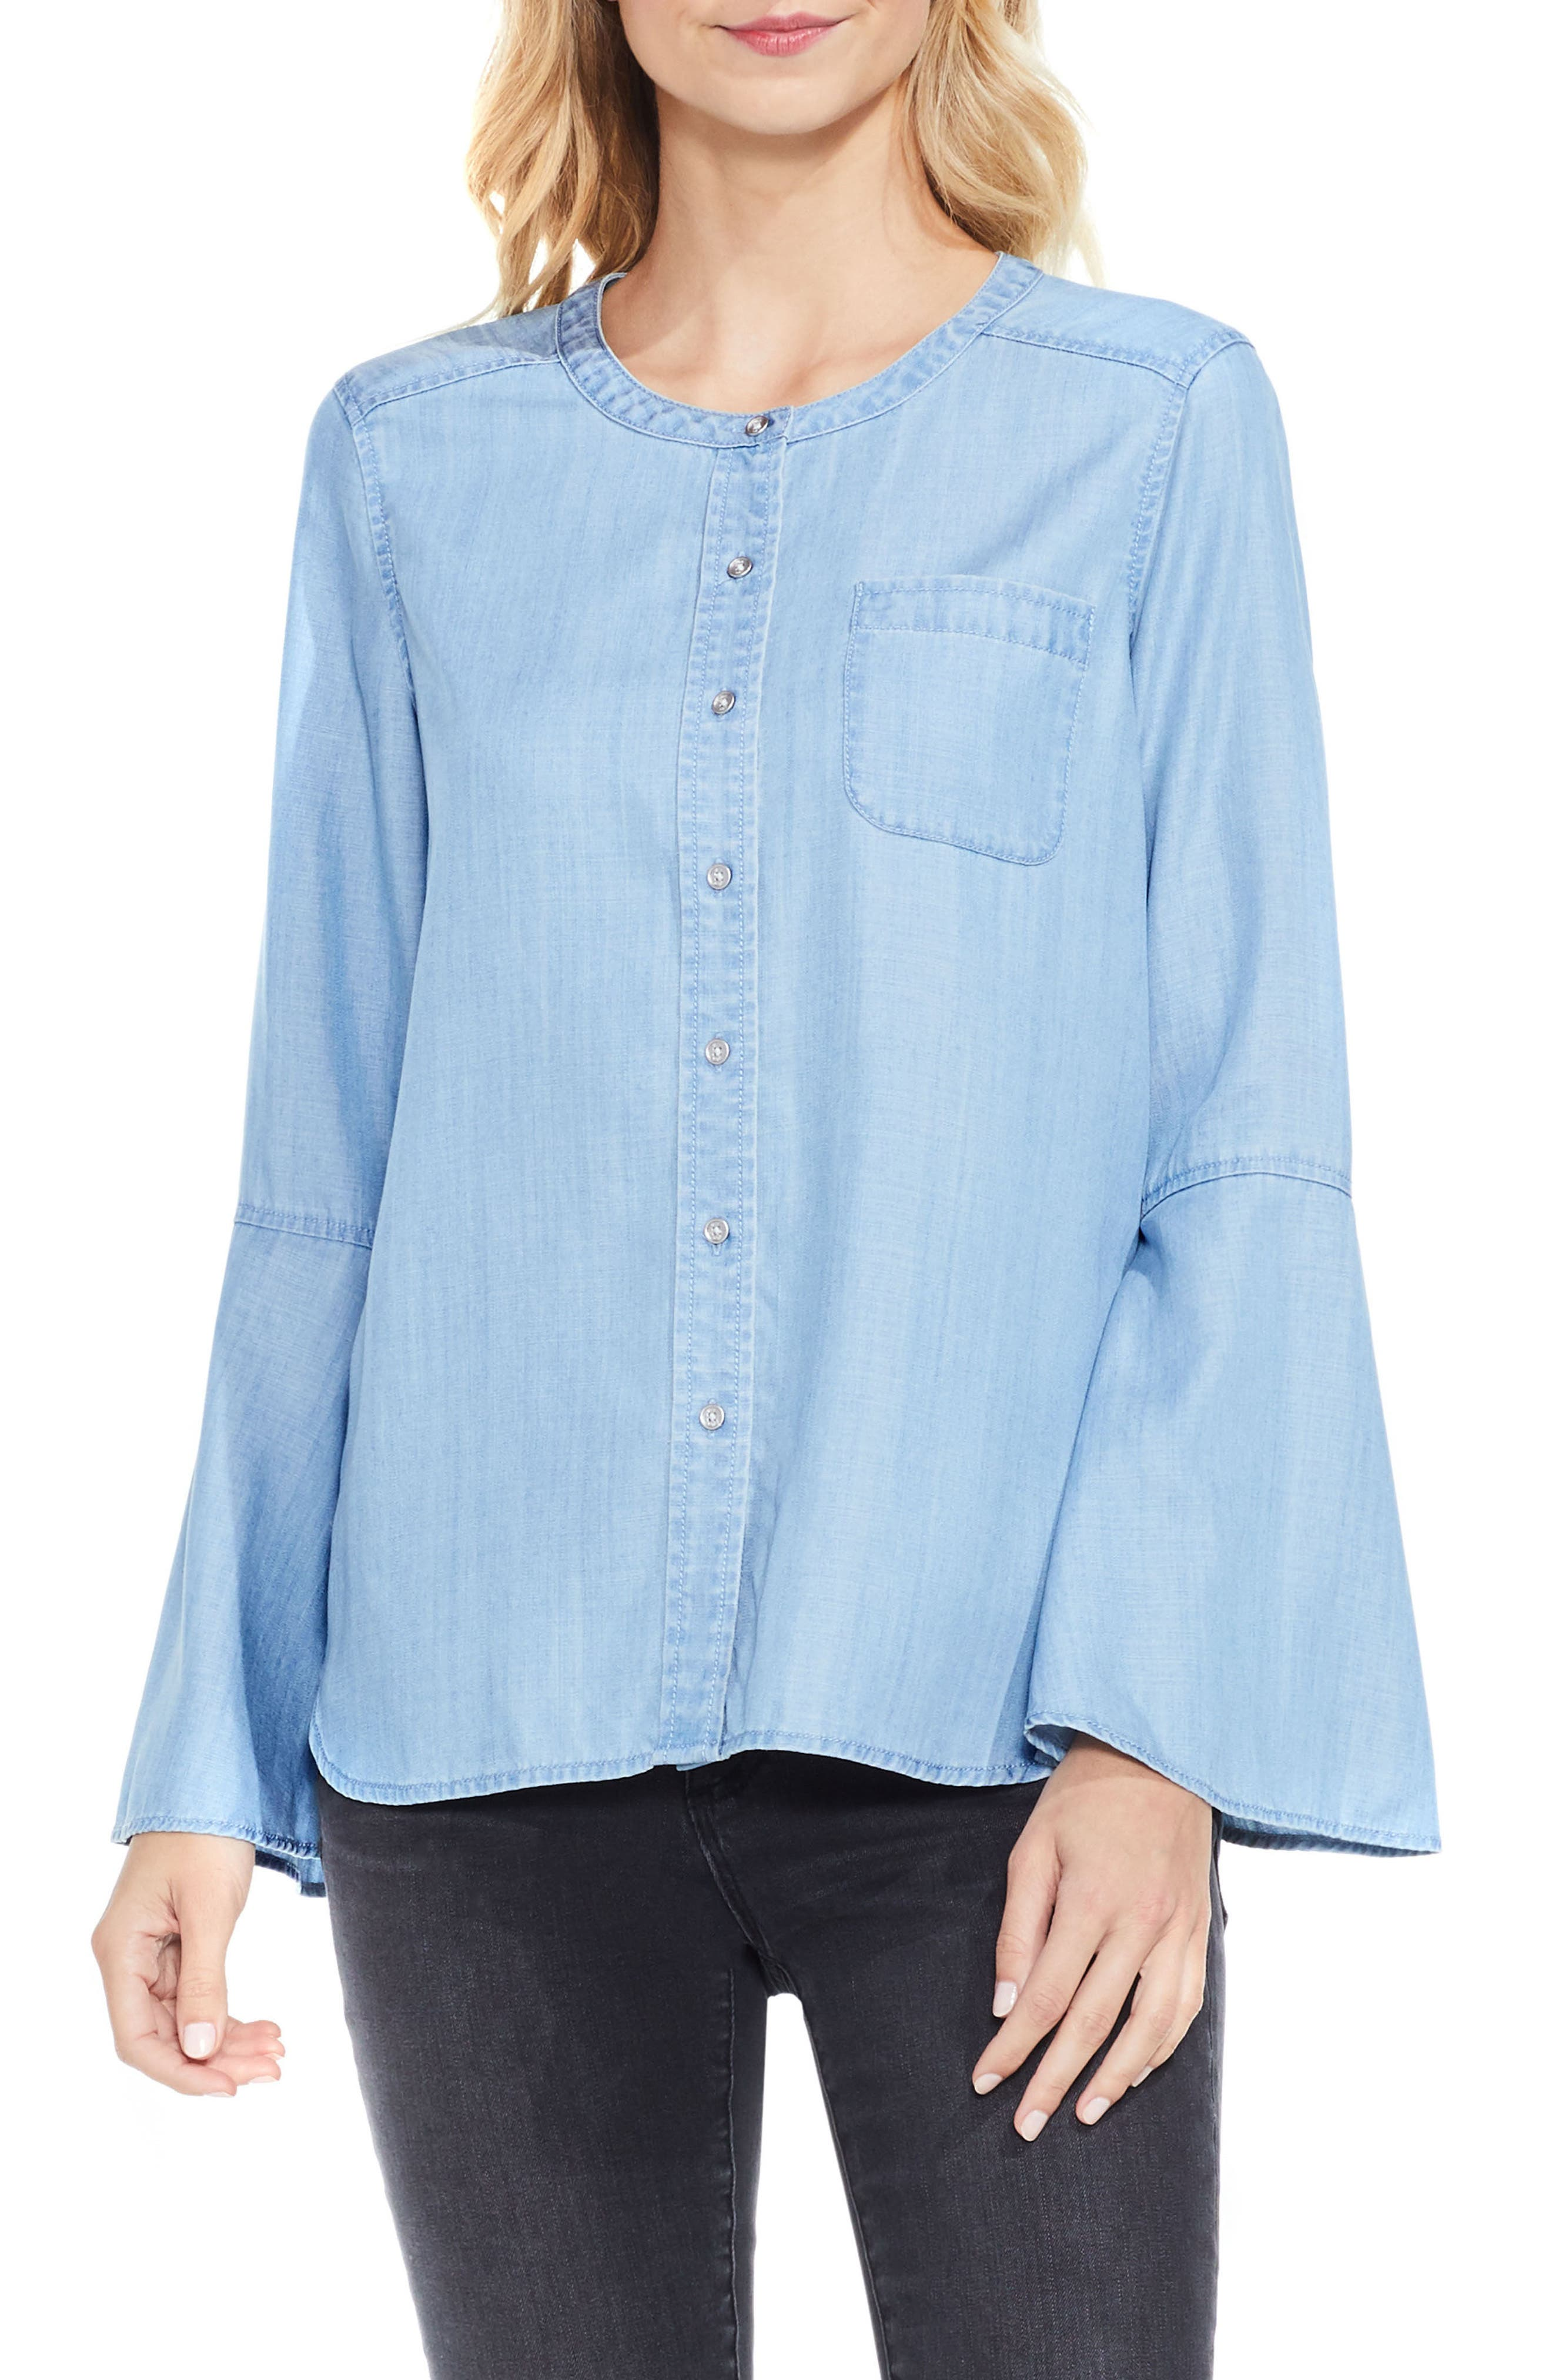 Main Image - Two by Vince Camuto Bell Sleeve Chambray Blouse